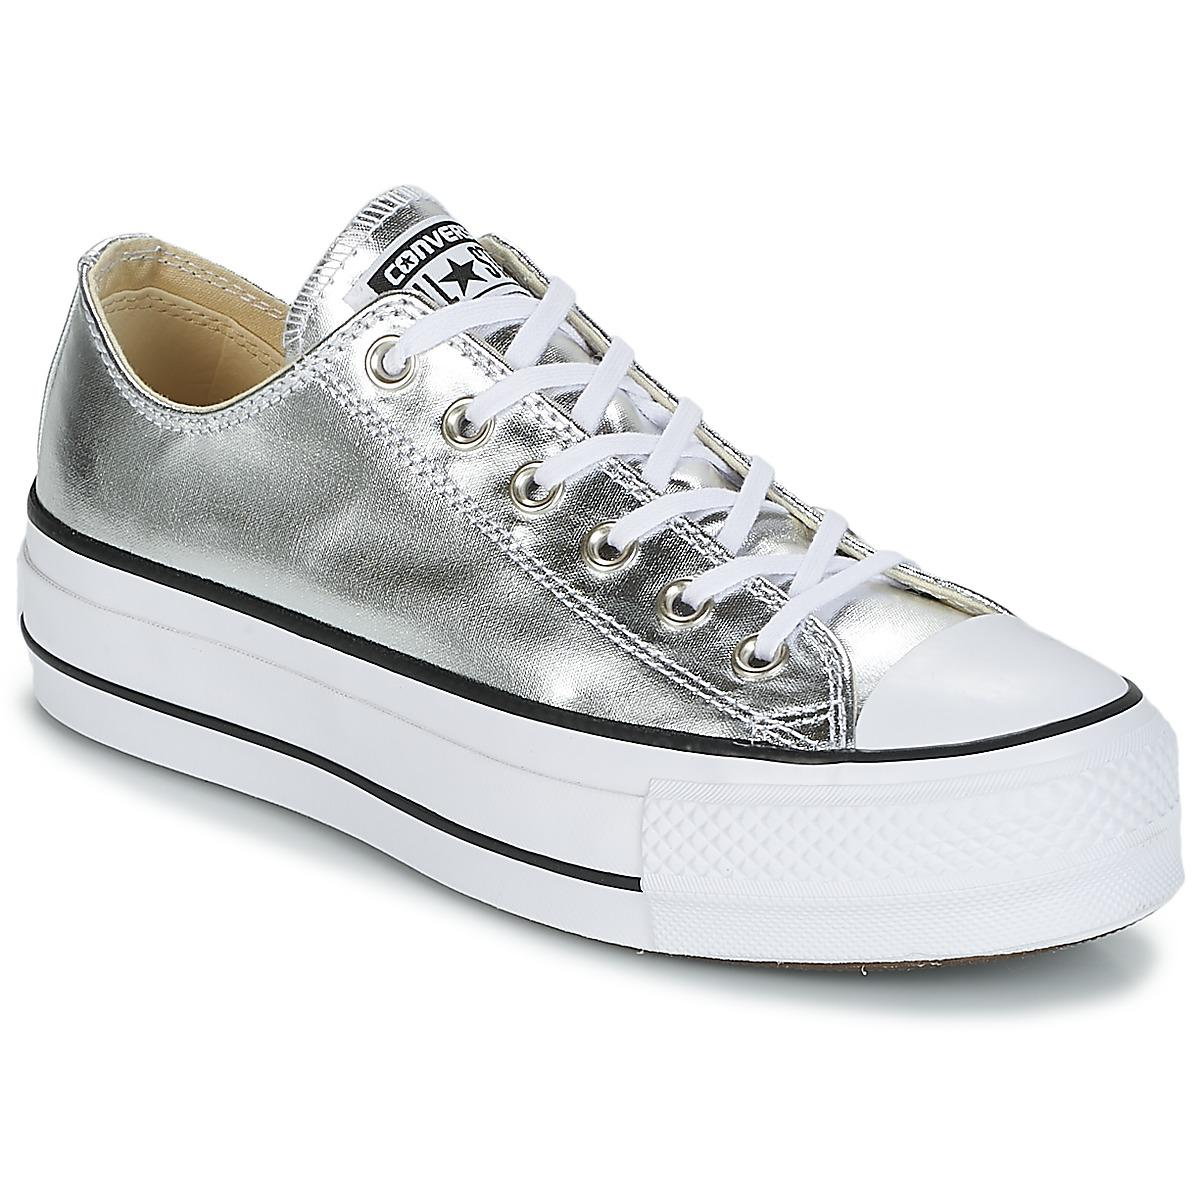 a793e95d86ac7 Converse Chuck Taylor All Star Lift Clean Ox Metallic Canvas Shoes ...